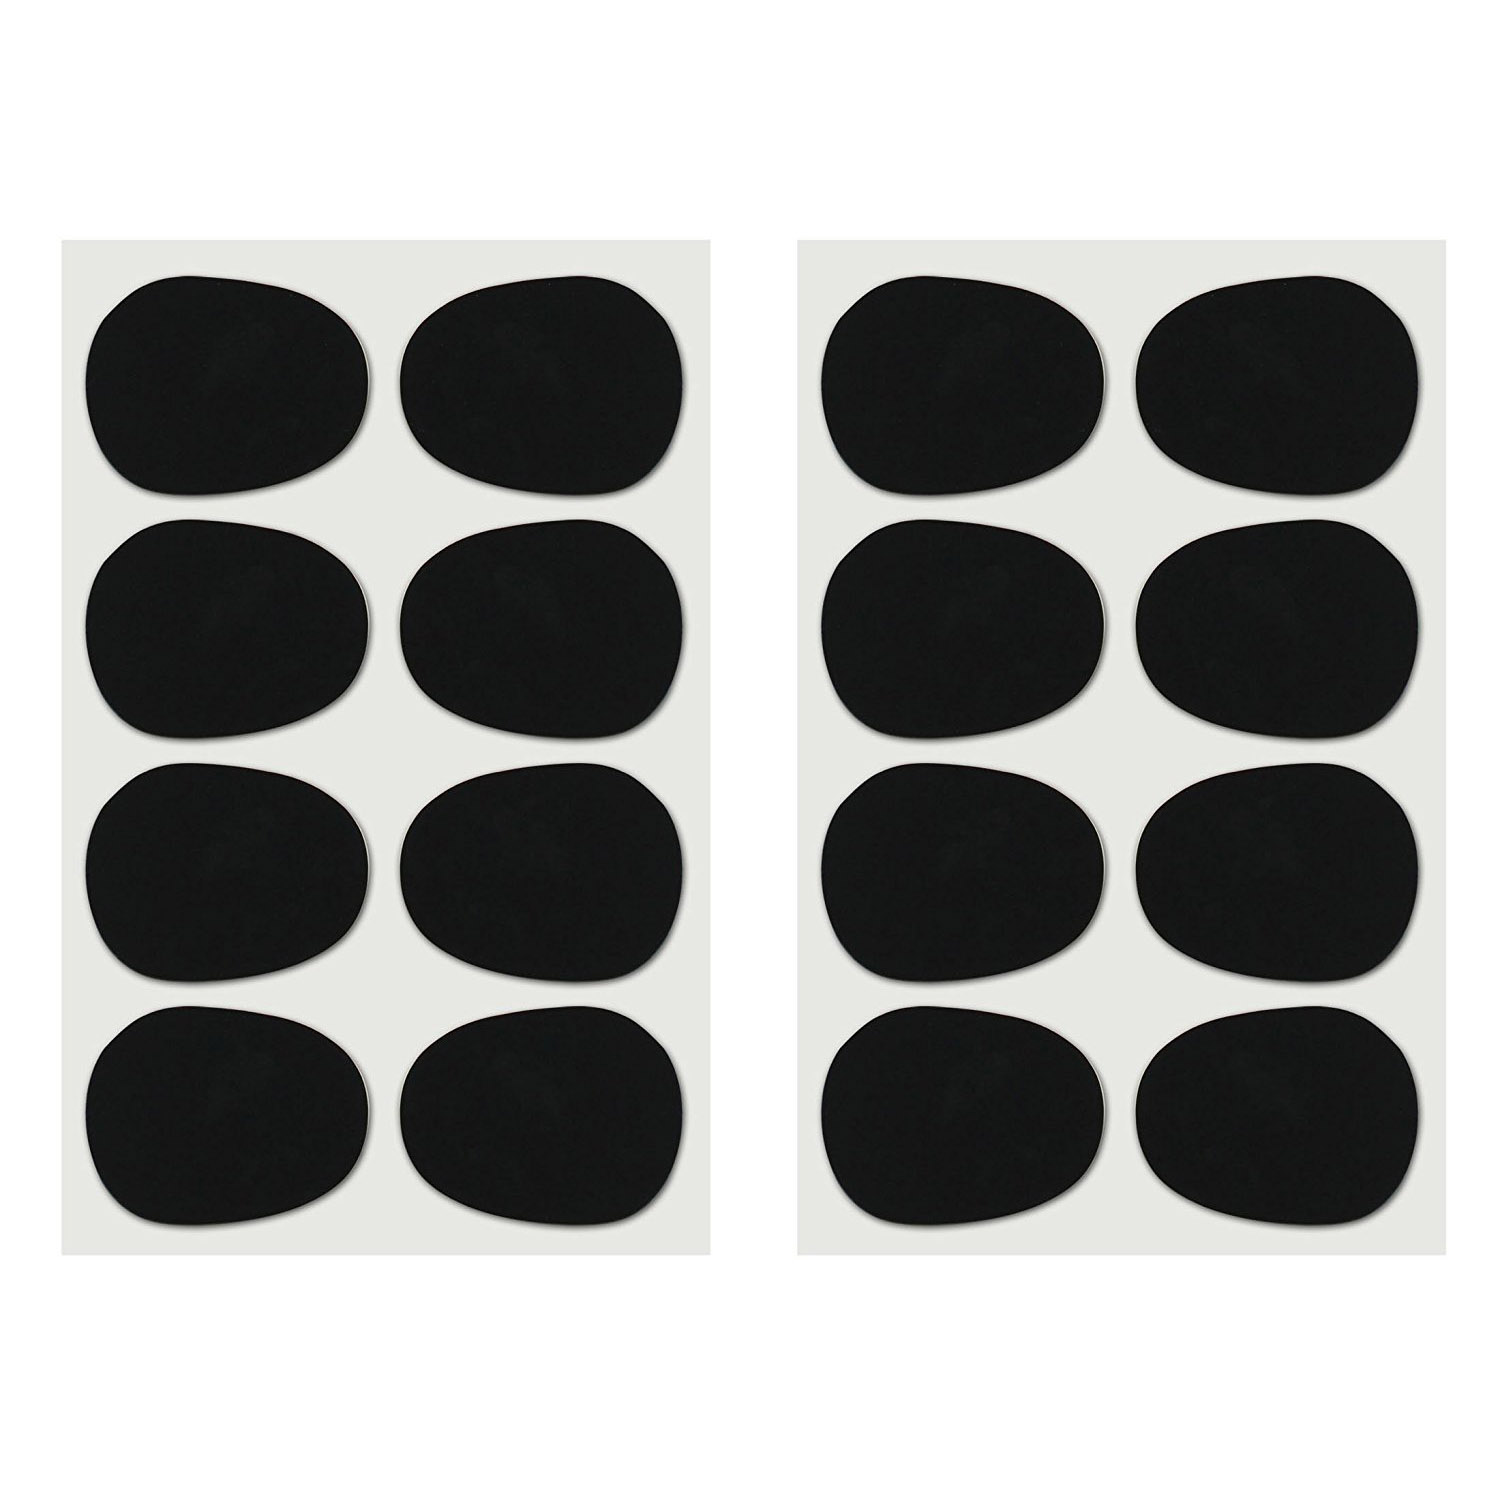 16pcs Alto/tenor Sax Clarinet Mouthpiece Patches Pads Cushions, 0.8mm Black, 16 Pack-MUSIC